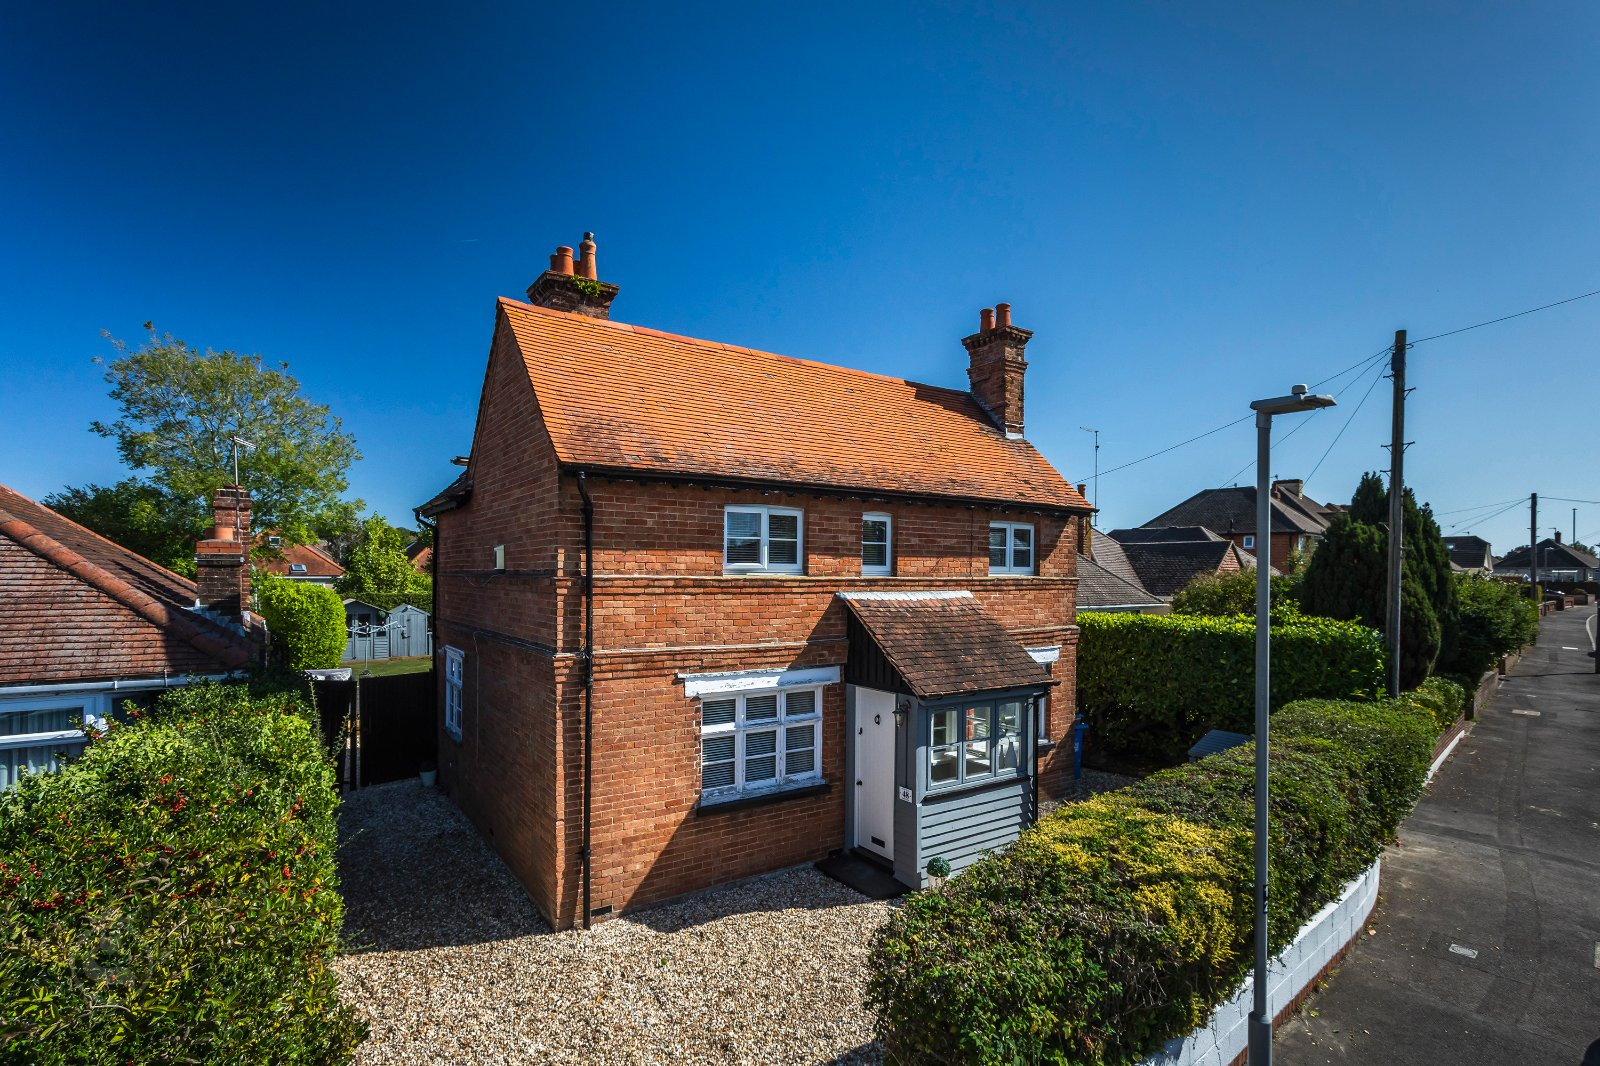 3 bed house for sale in Oakdale, BH15